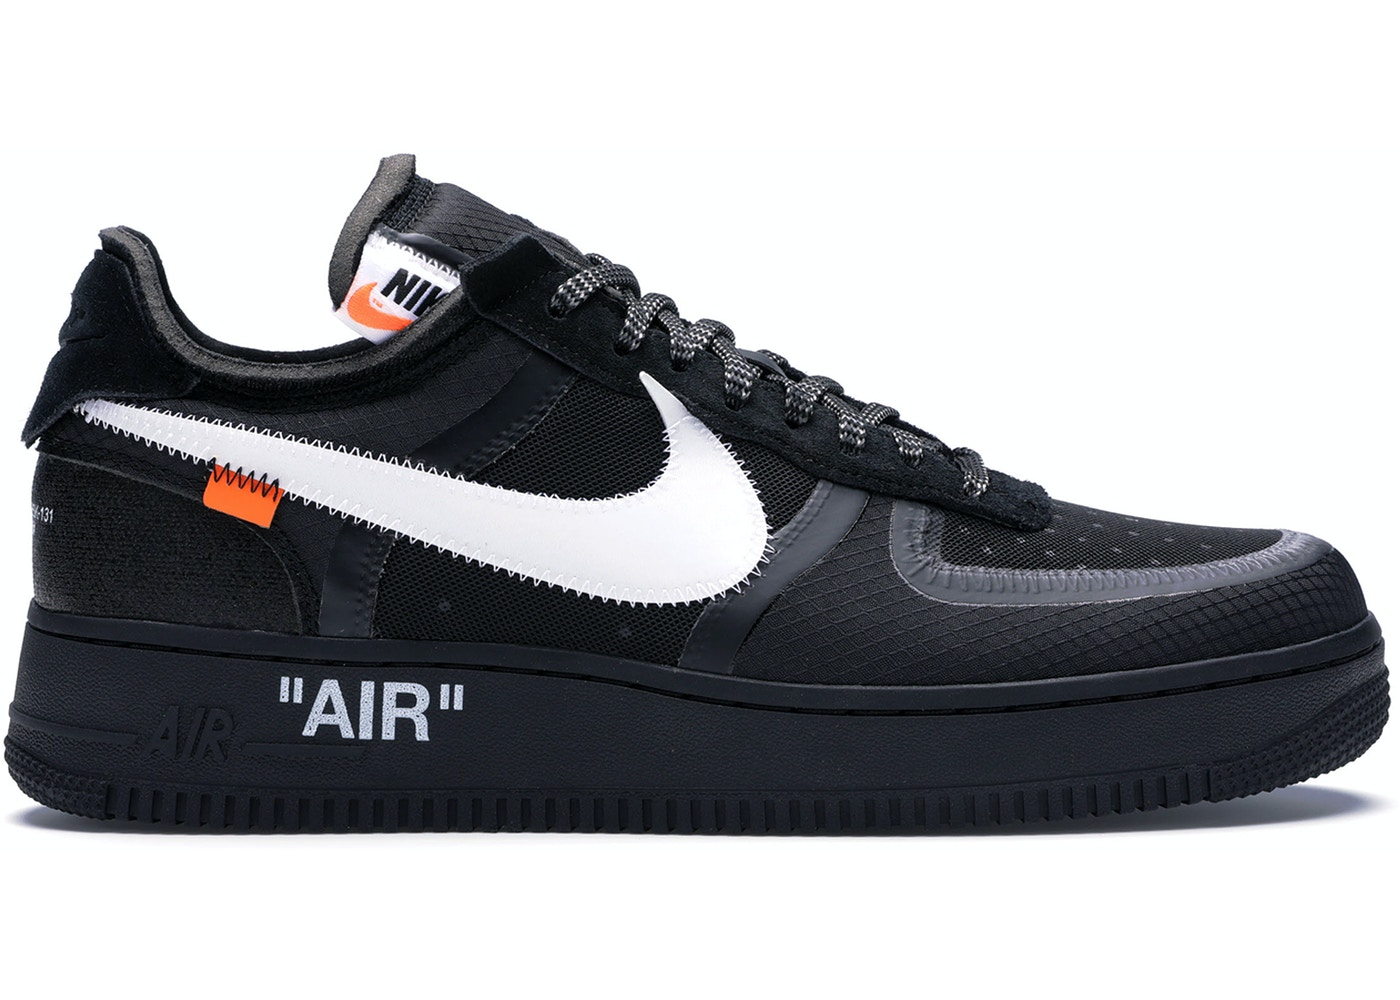 918c5c05112d Air Force 1 Low Off-White Black White